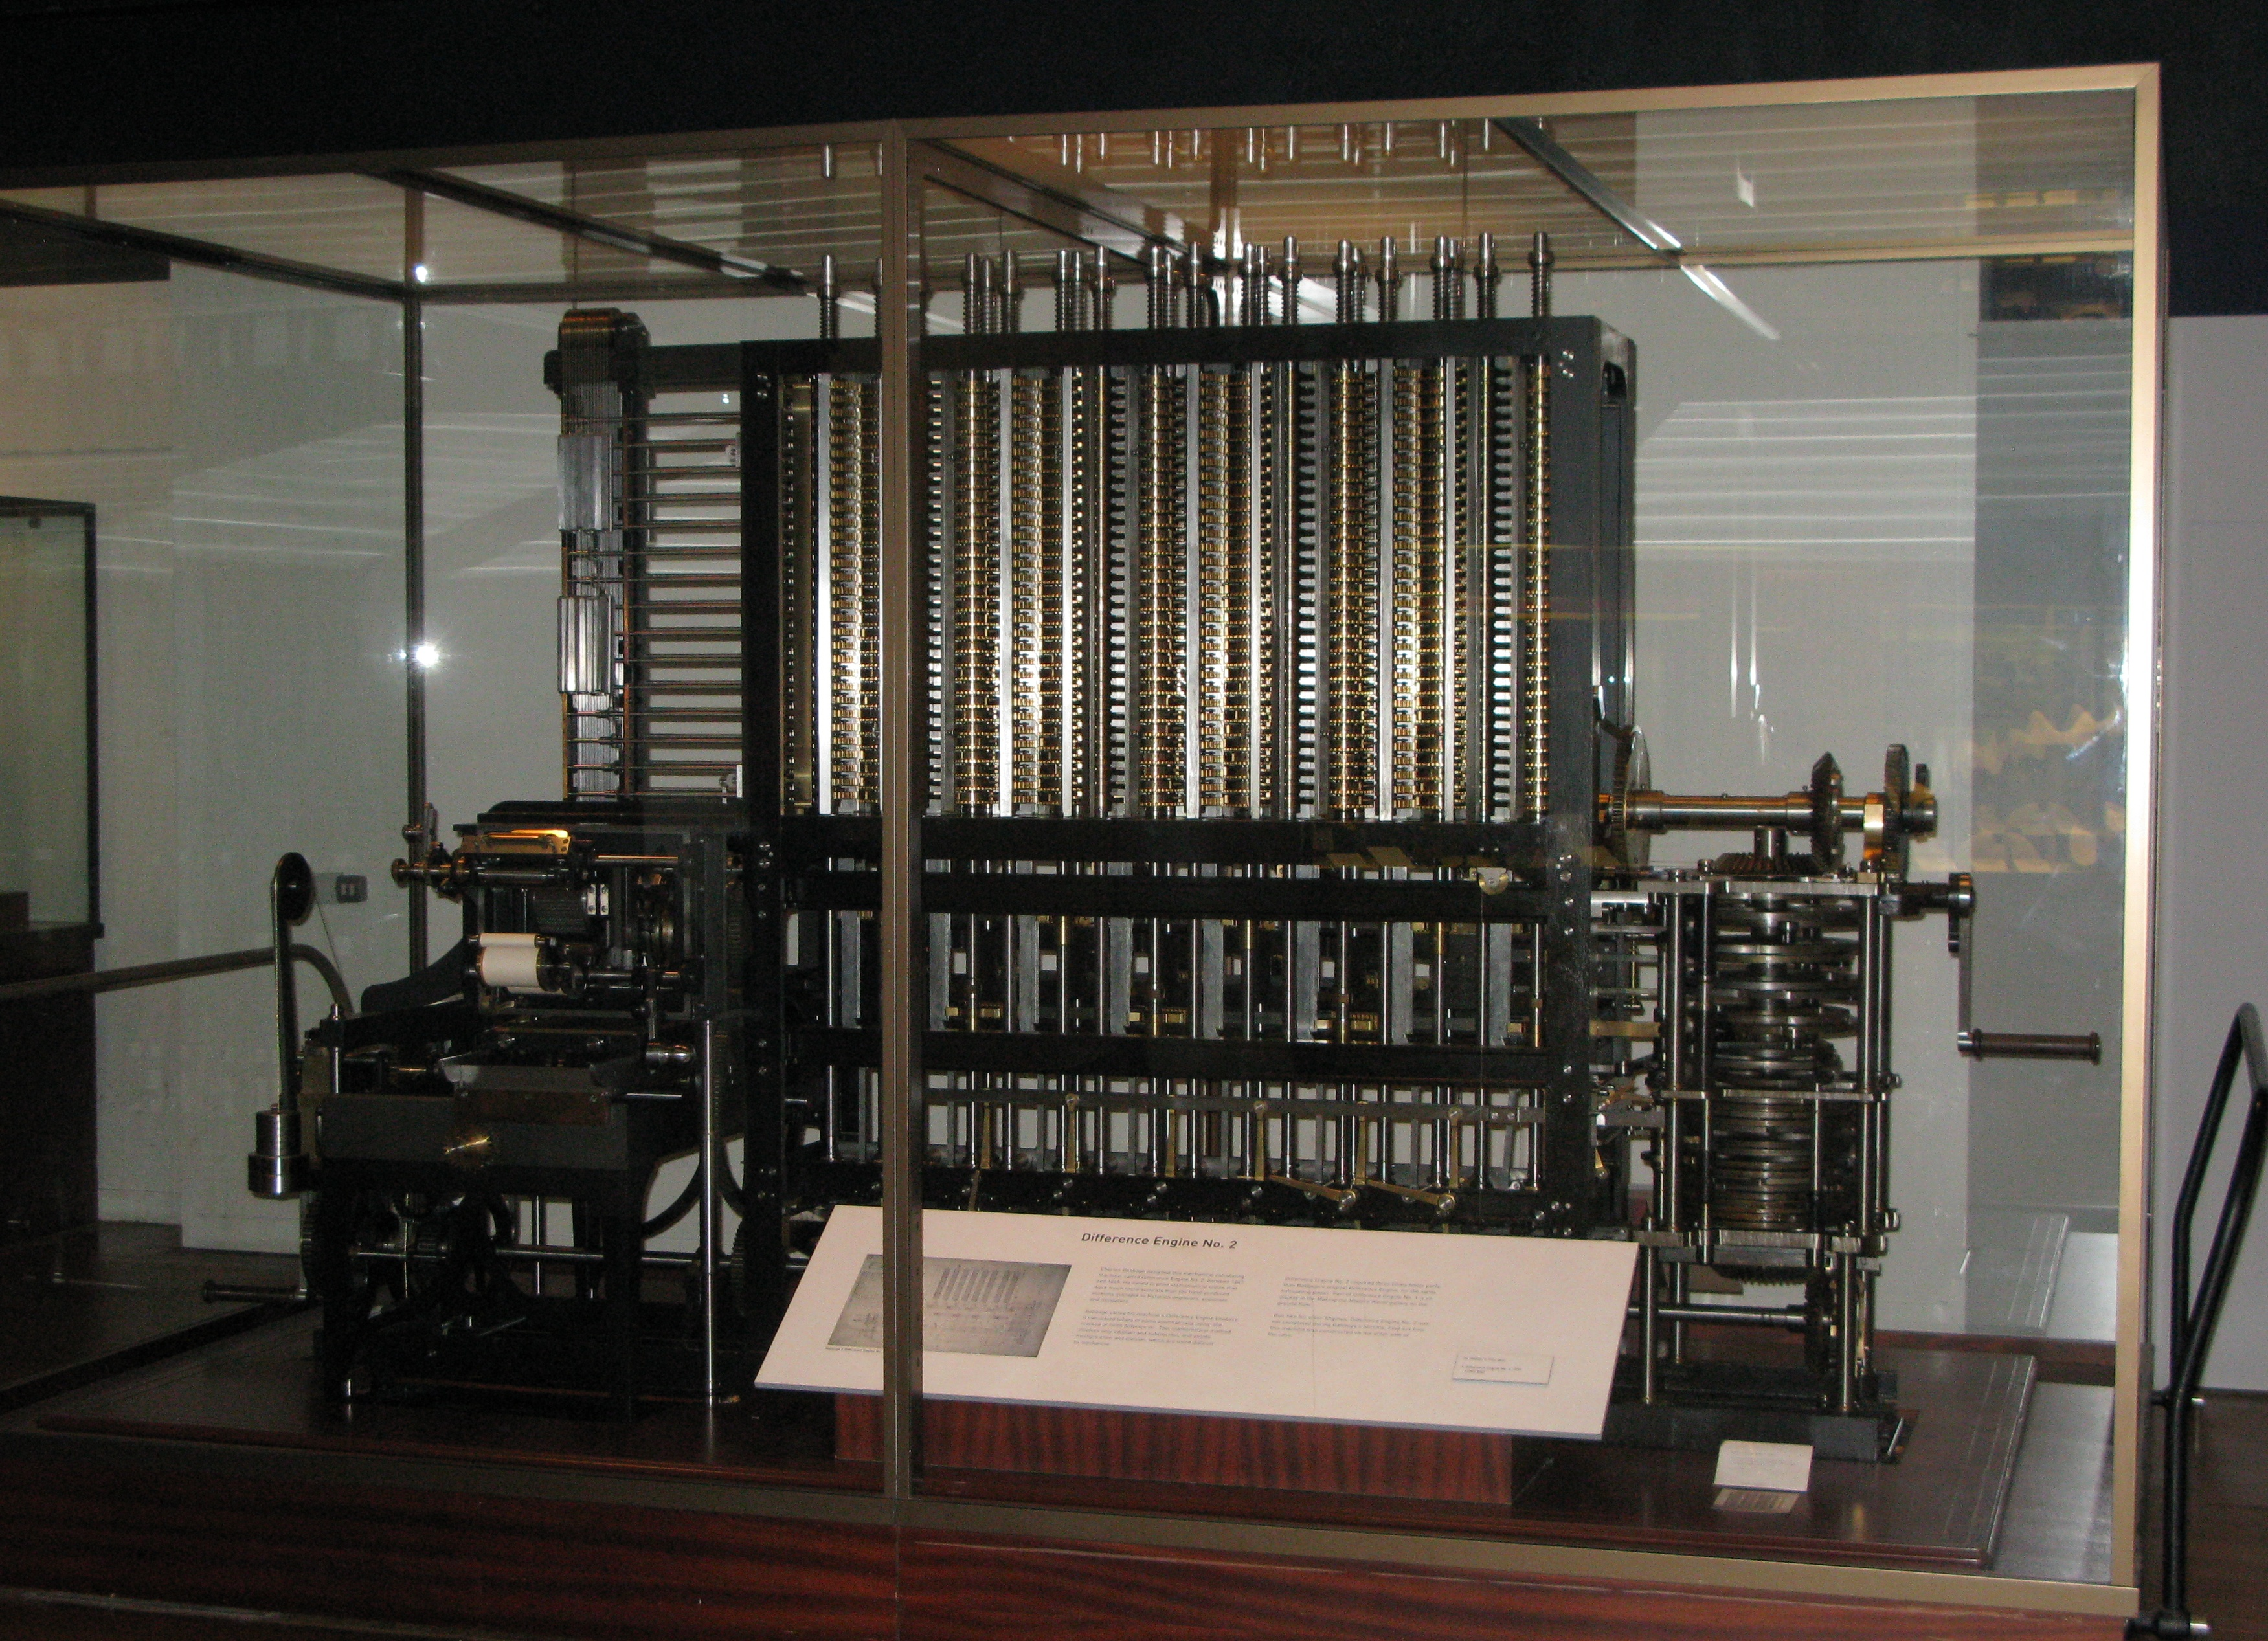 Babbage's Difference Engine - one of the earliest computers that wasn't a person